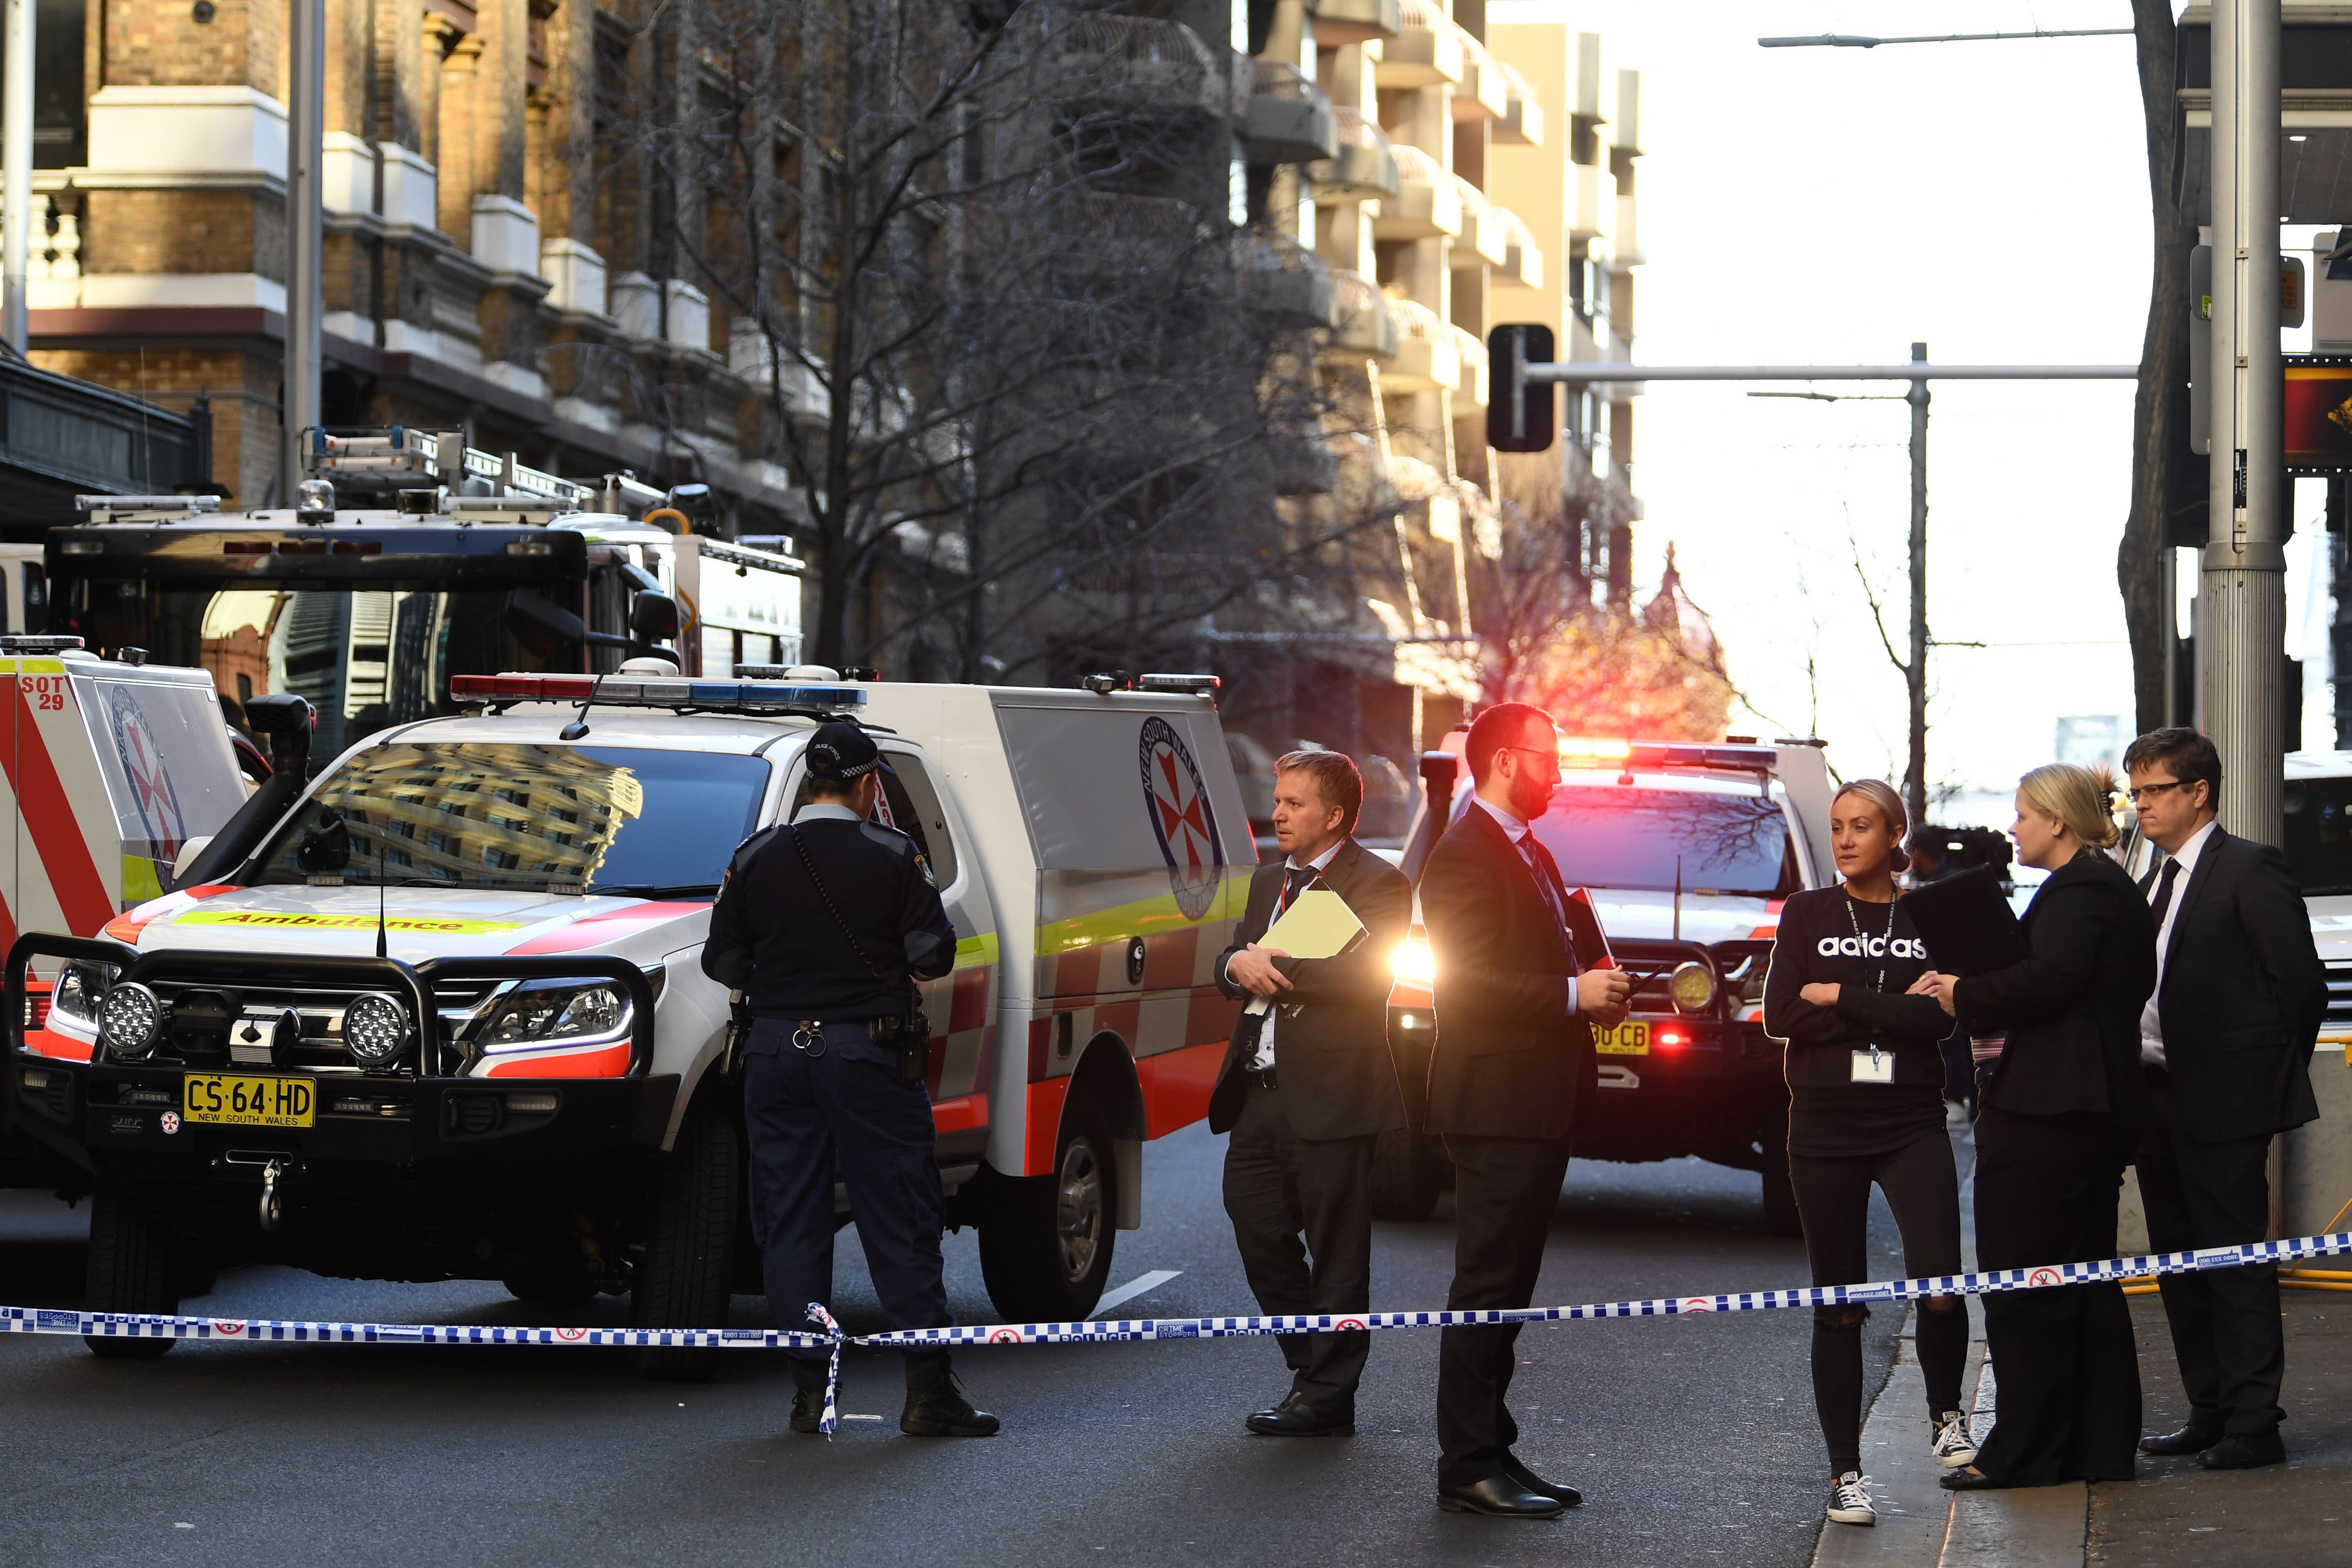 Australian police say woman stabbed in downtown Sydney attack thumbnail